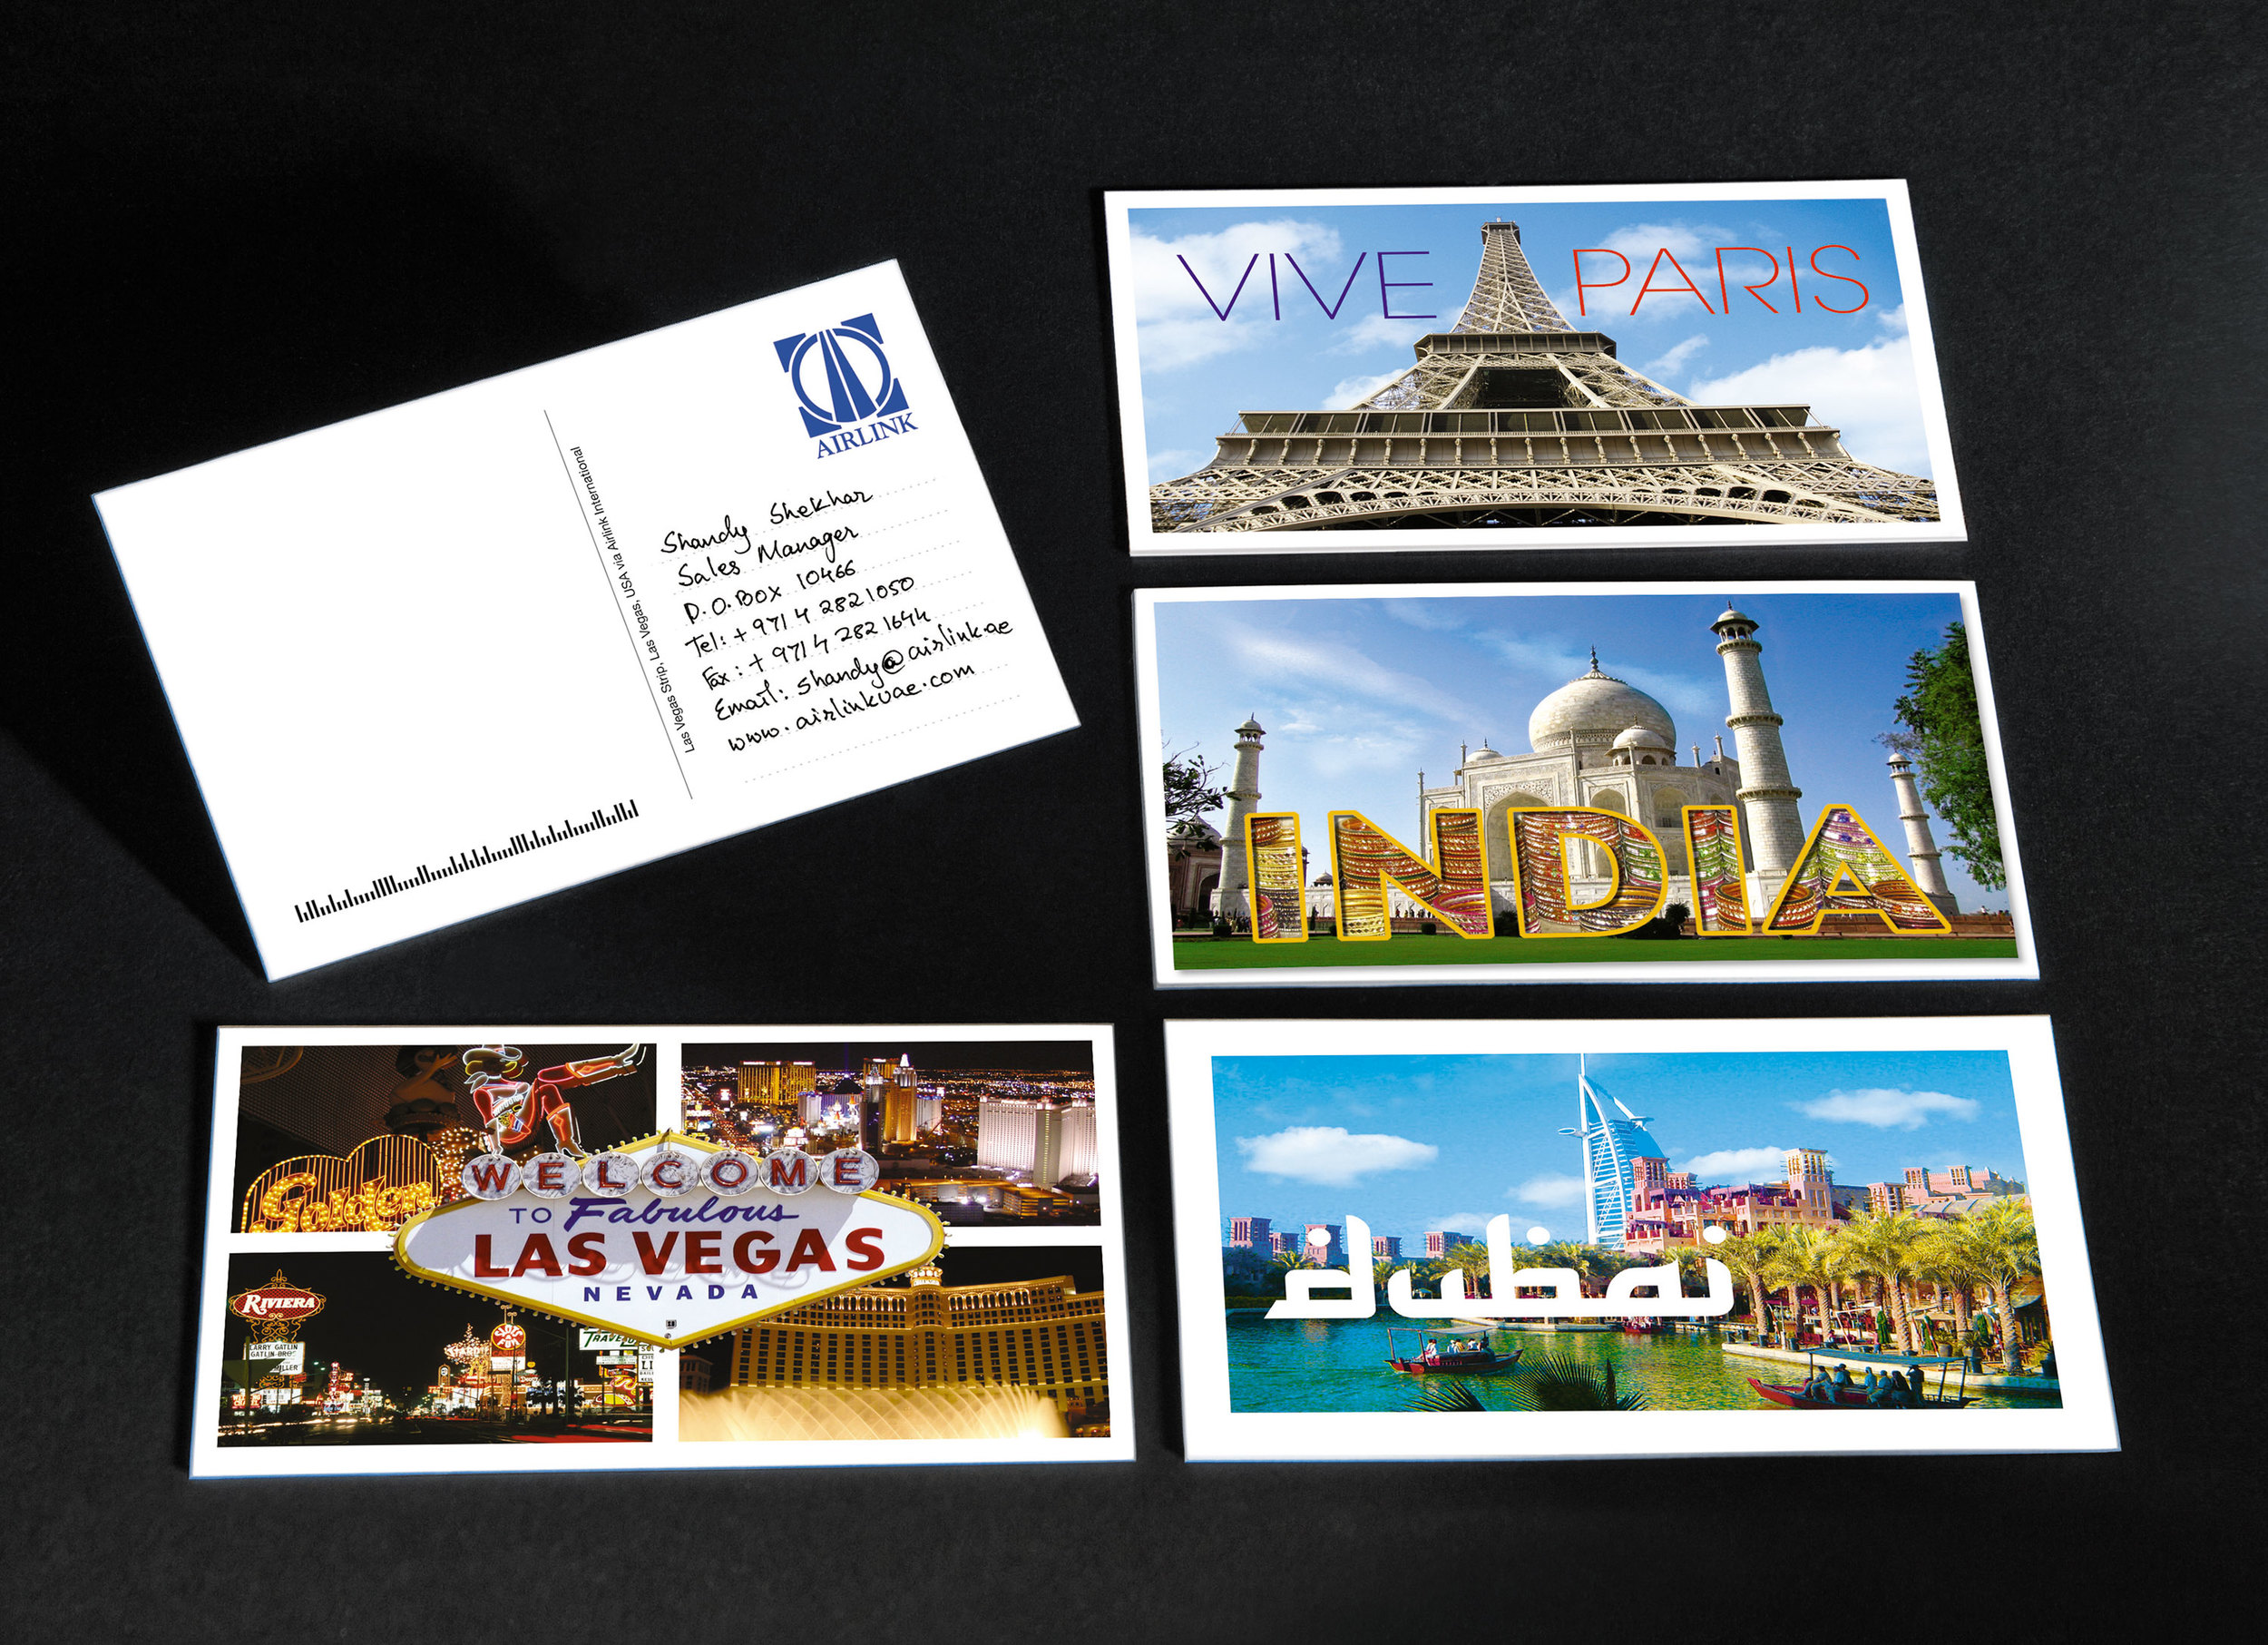 Every travel agent had their respective travel destination sectors printed as their business cards.